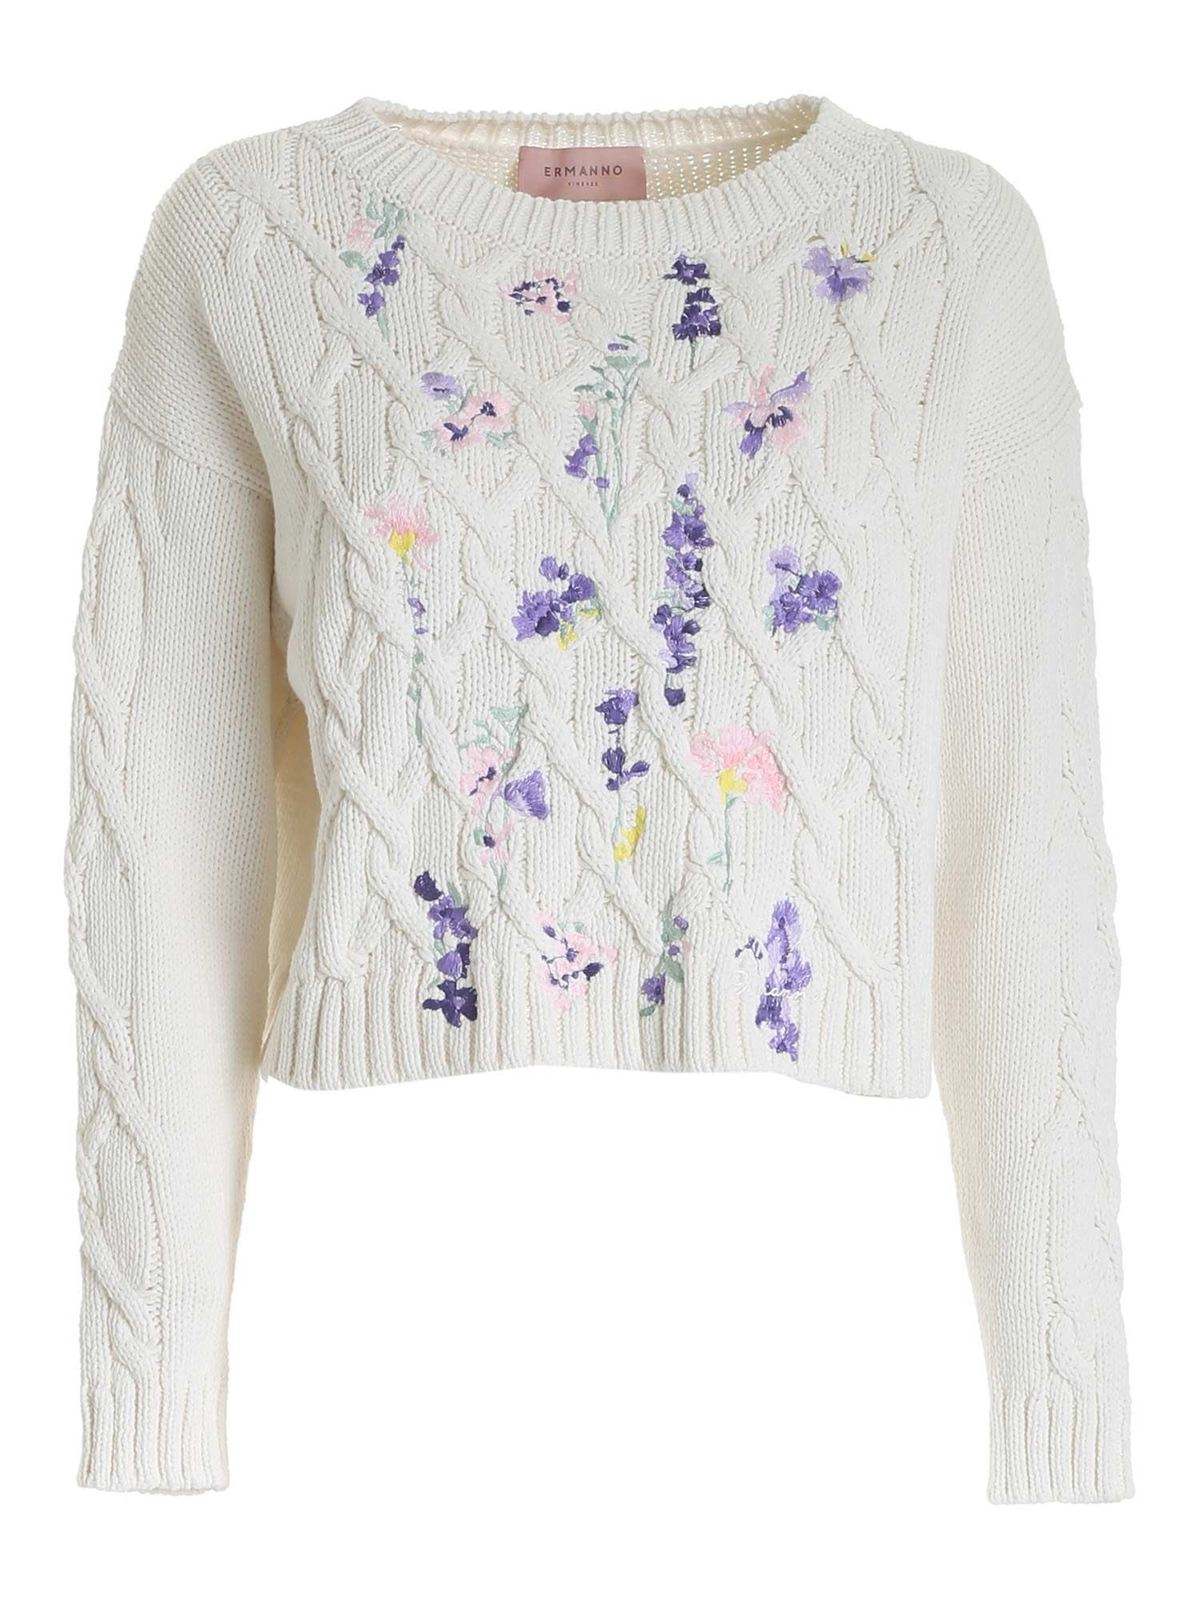 Ermanno Scervino EMBROIDERED CROP SWEATER IN IVORY COLOR